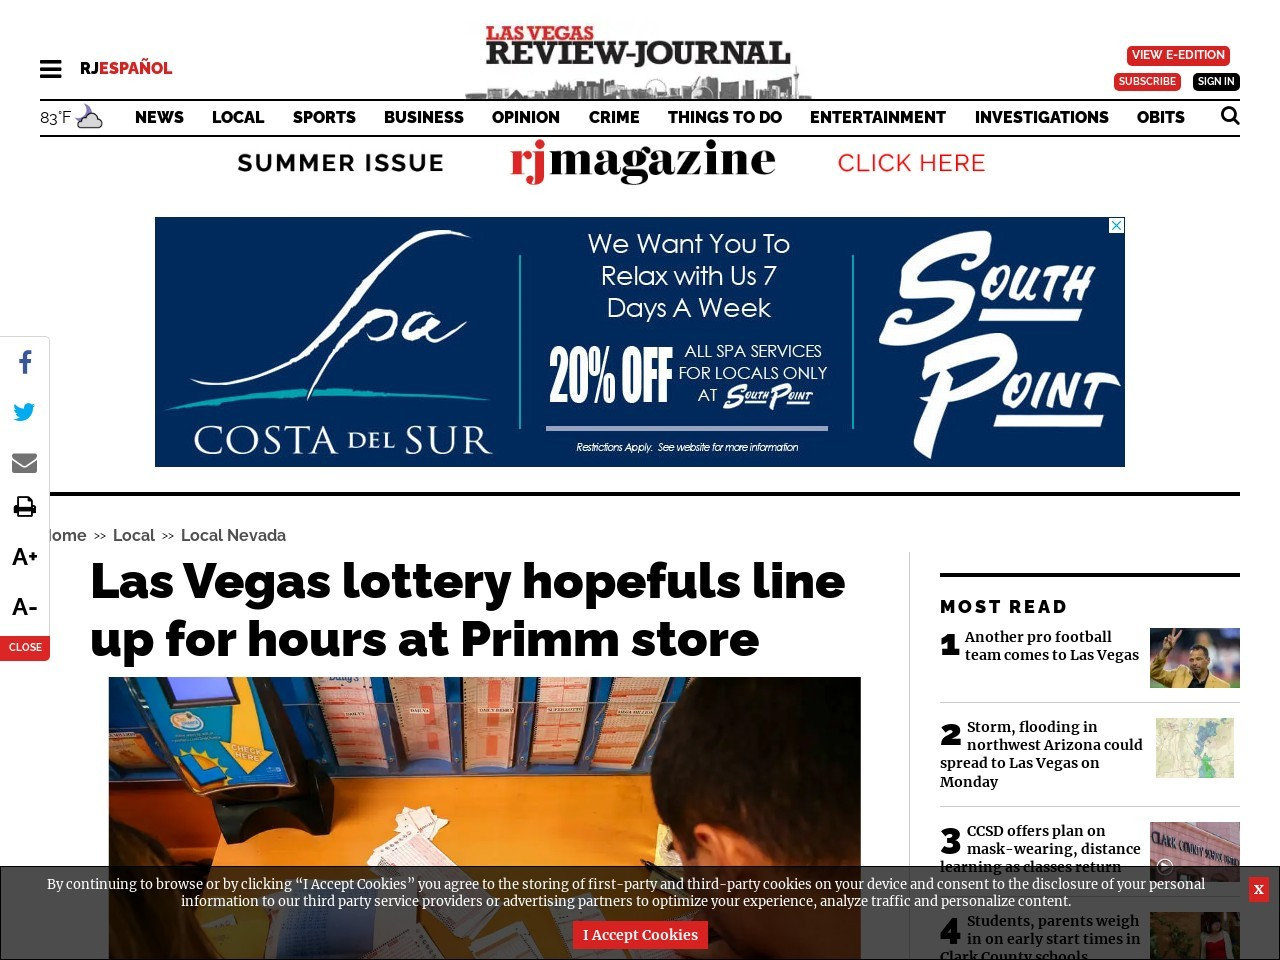 Las Vegas lottery hopefuls line up for hours at Primm store